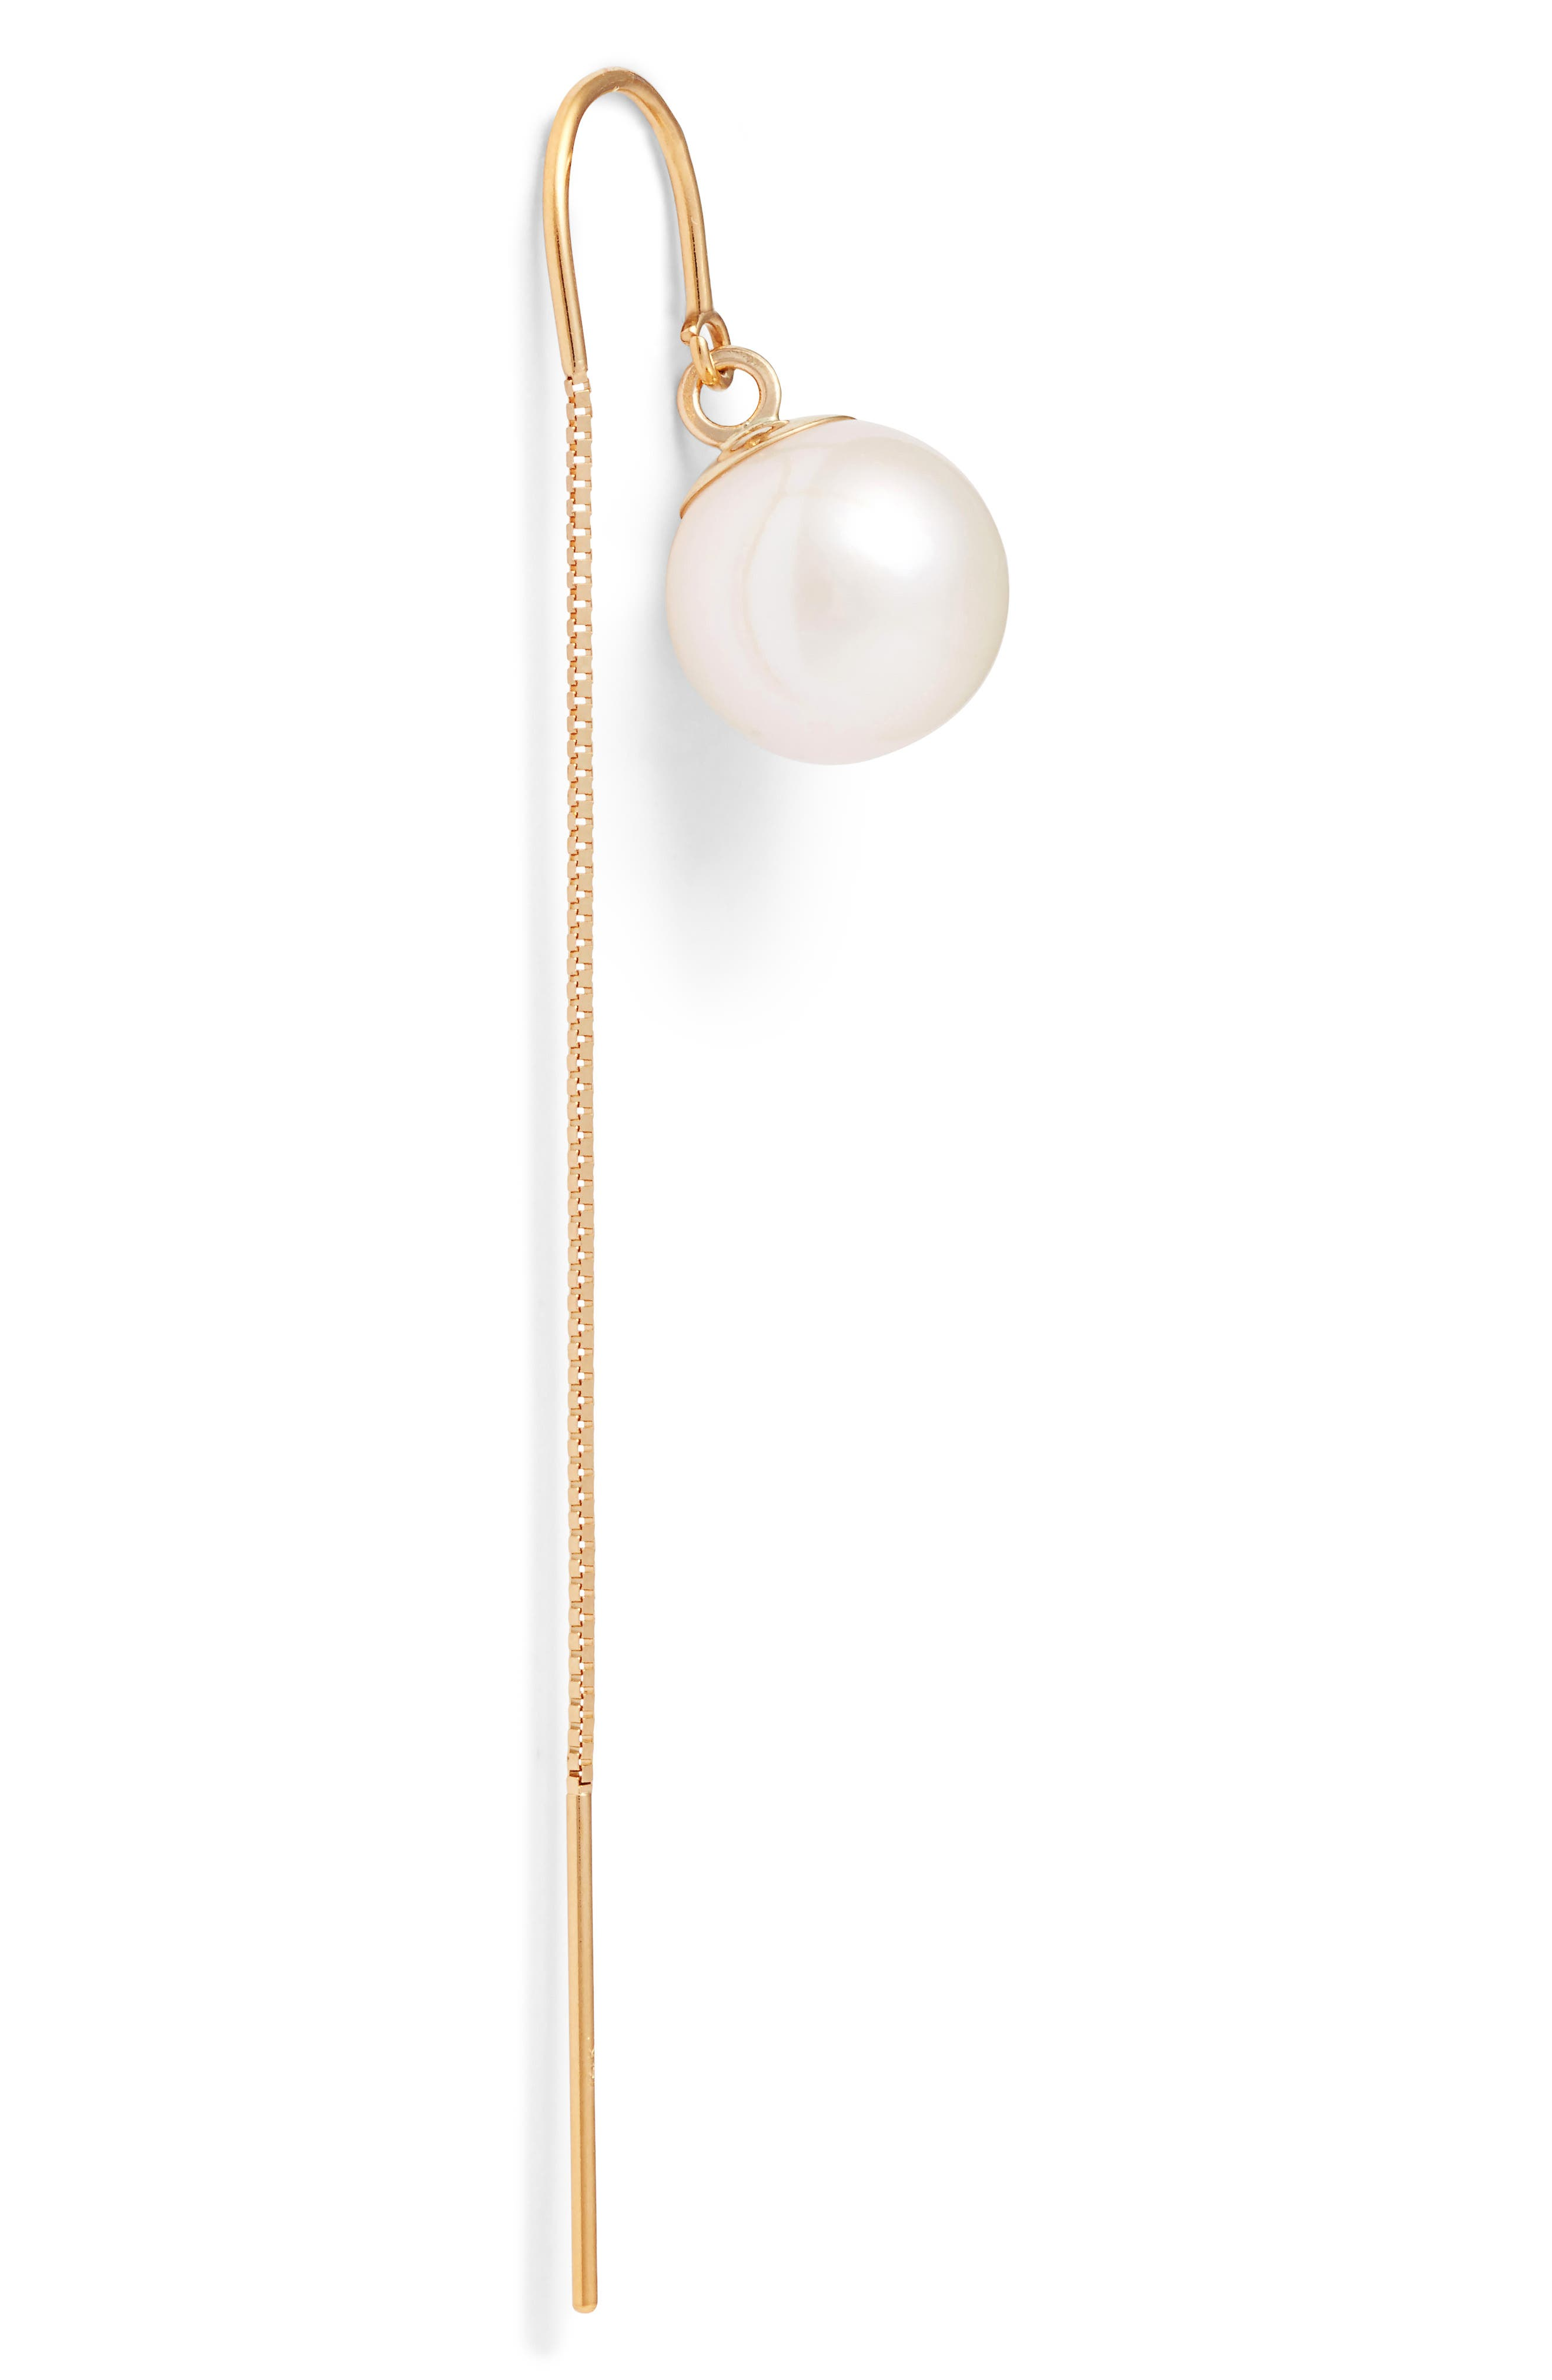 Pearl Threader Earrings,                             Alternate thumbnail 5, color,                             YELLOW GOLD/ WHITE PEARL